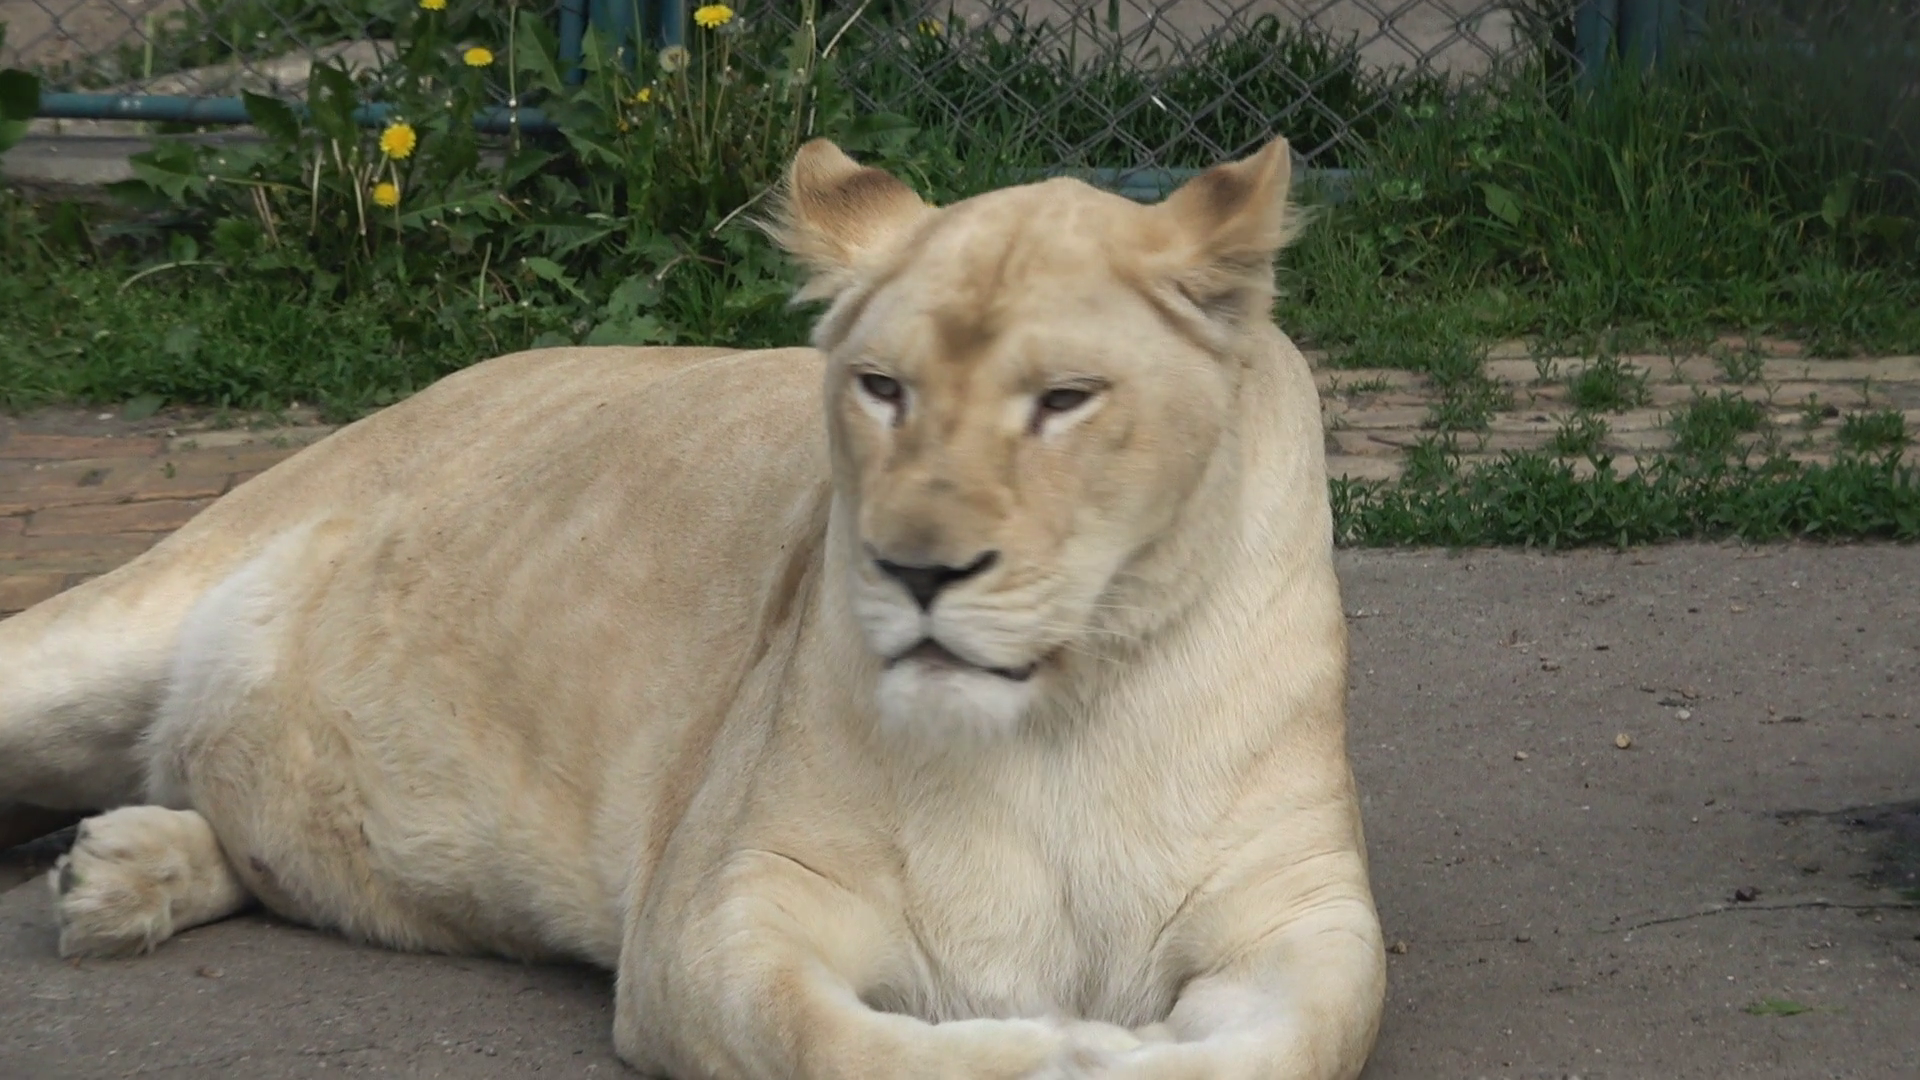 White Lioness In The Zoo Slow Motion Stock Video Footage - VideoBlocks